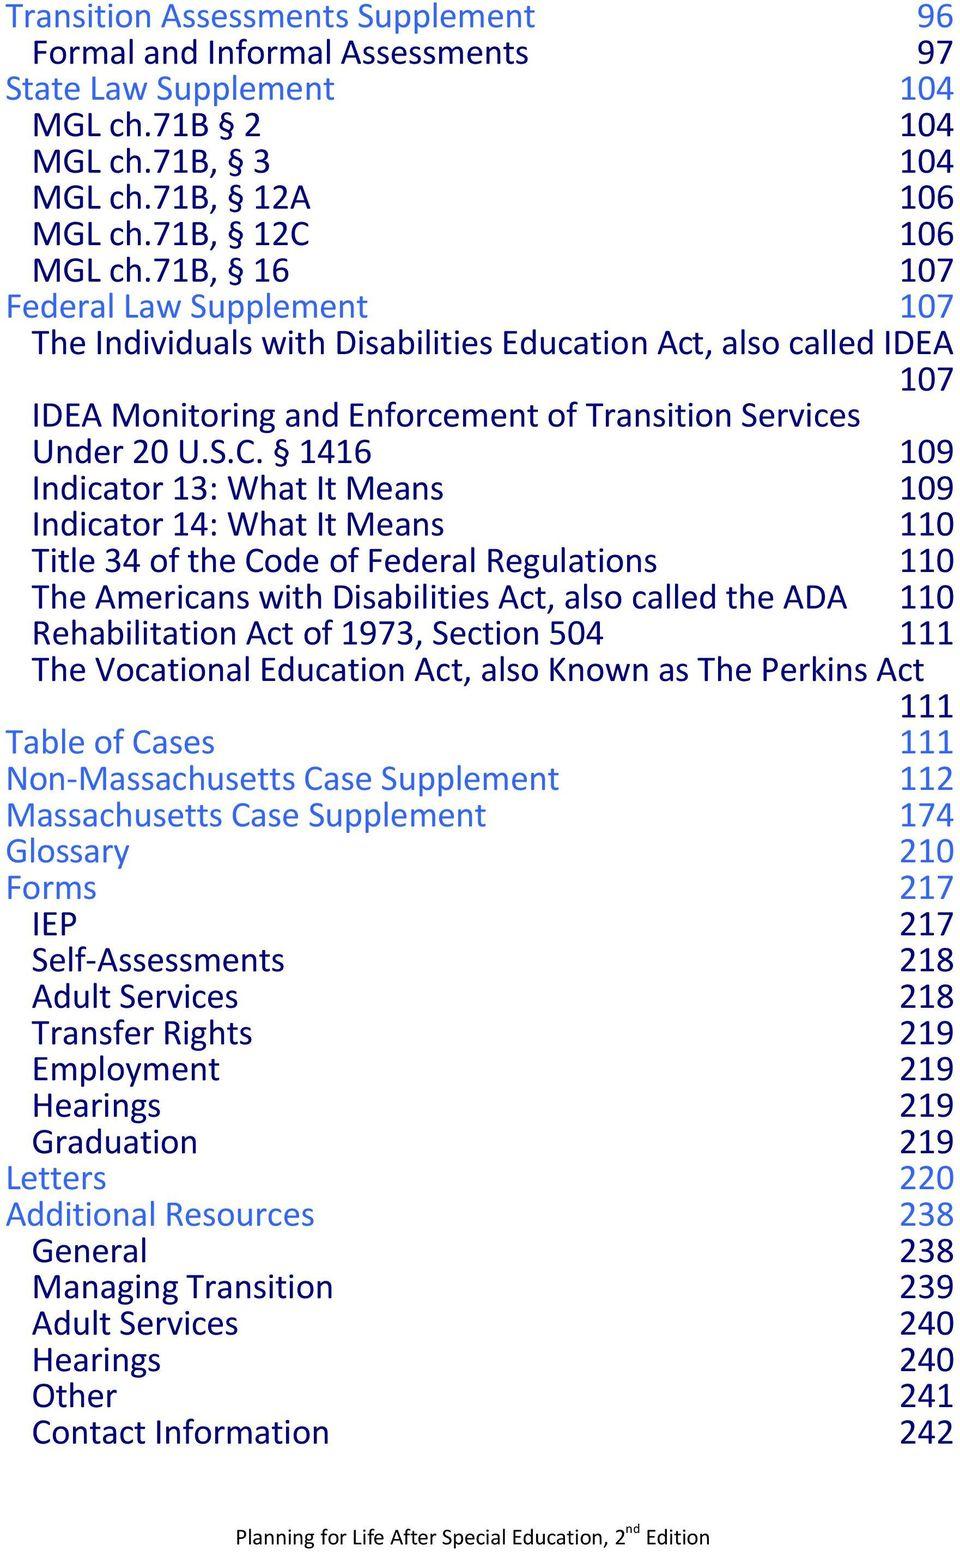 1416 109 Indicator 13: What It Means Indicator 14: What It Means 109 110 Title 34 of the Code of Federal Regulations 110 The Americans with Disabilities Act, also called the ADA Rehabilitation Act of